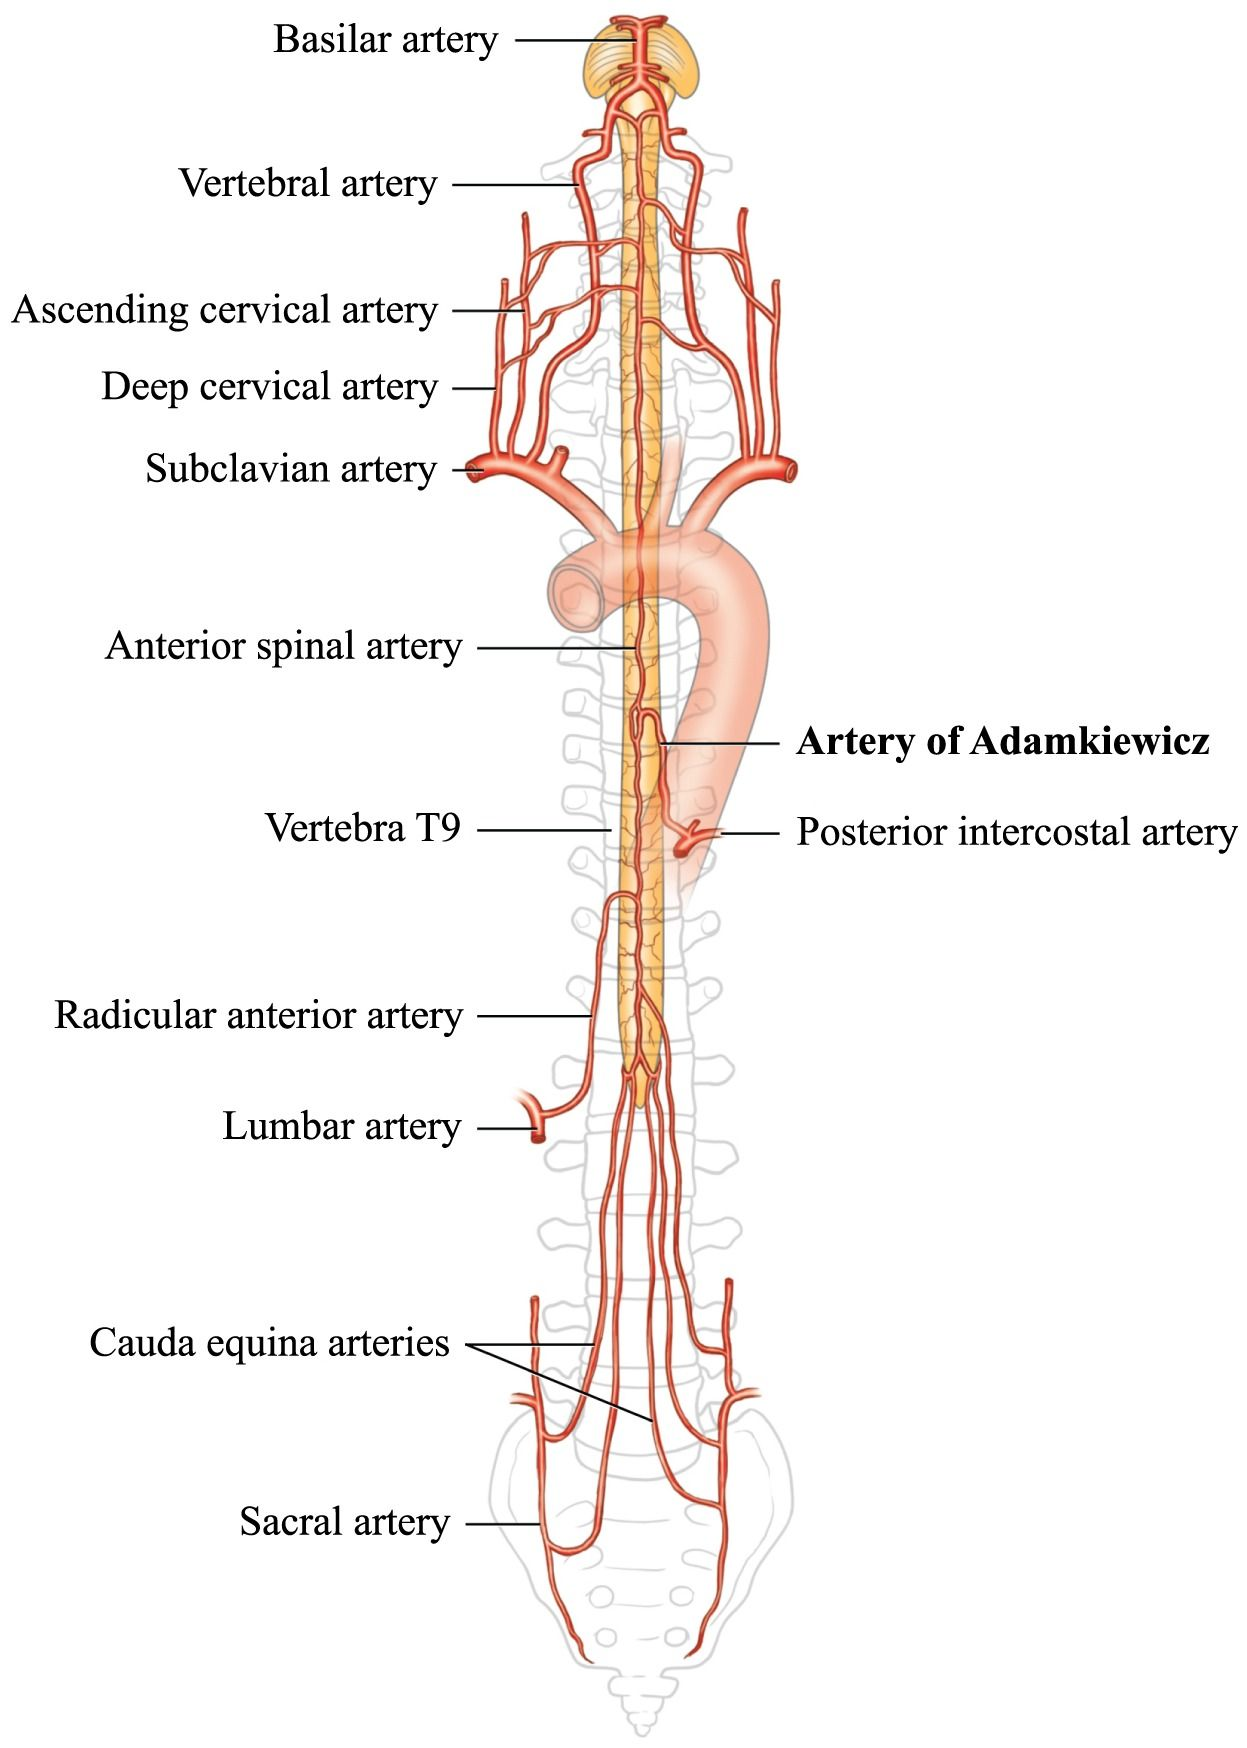 Anatomy of spinal blood supply   Angio   Pinterest